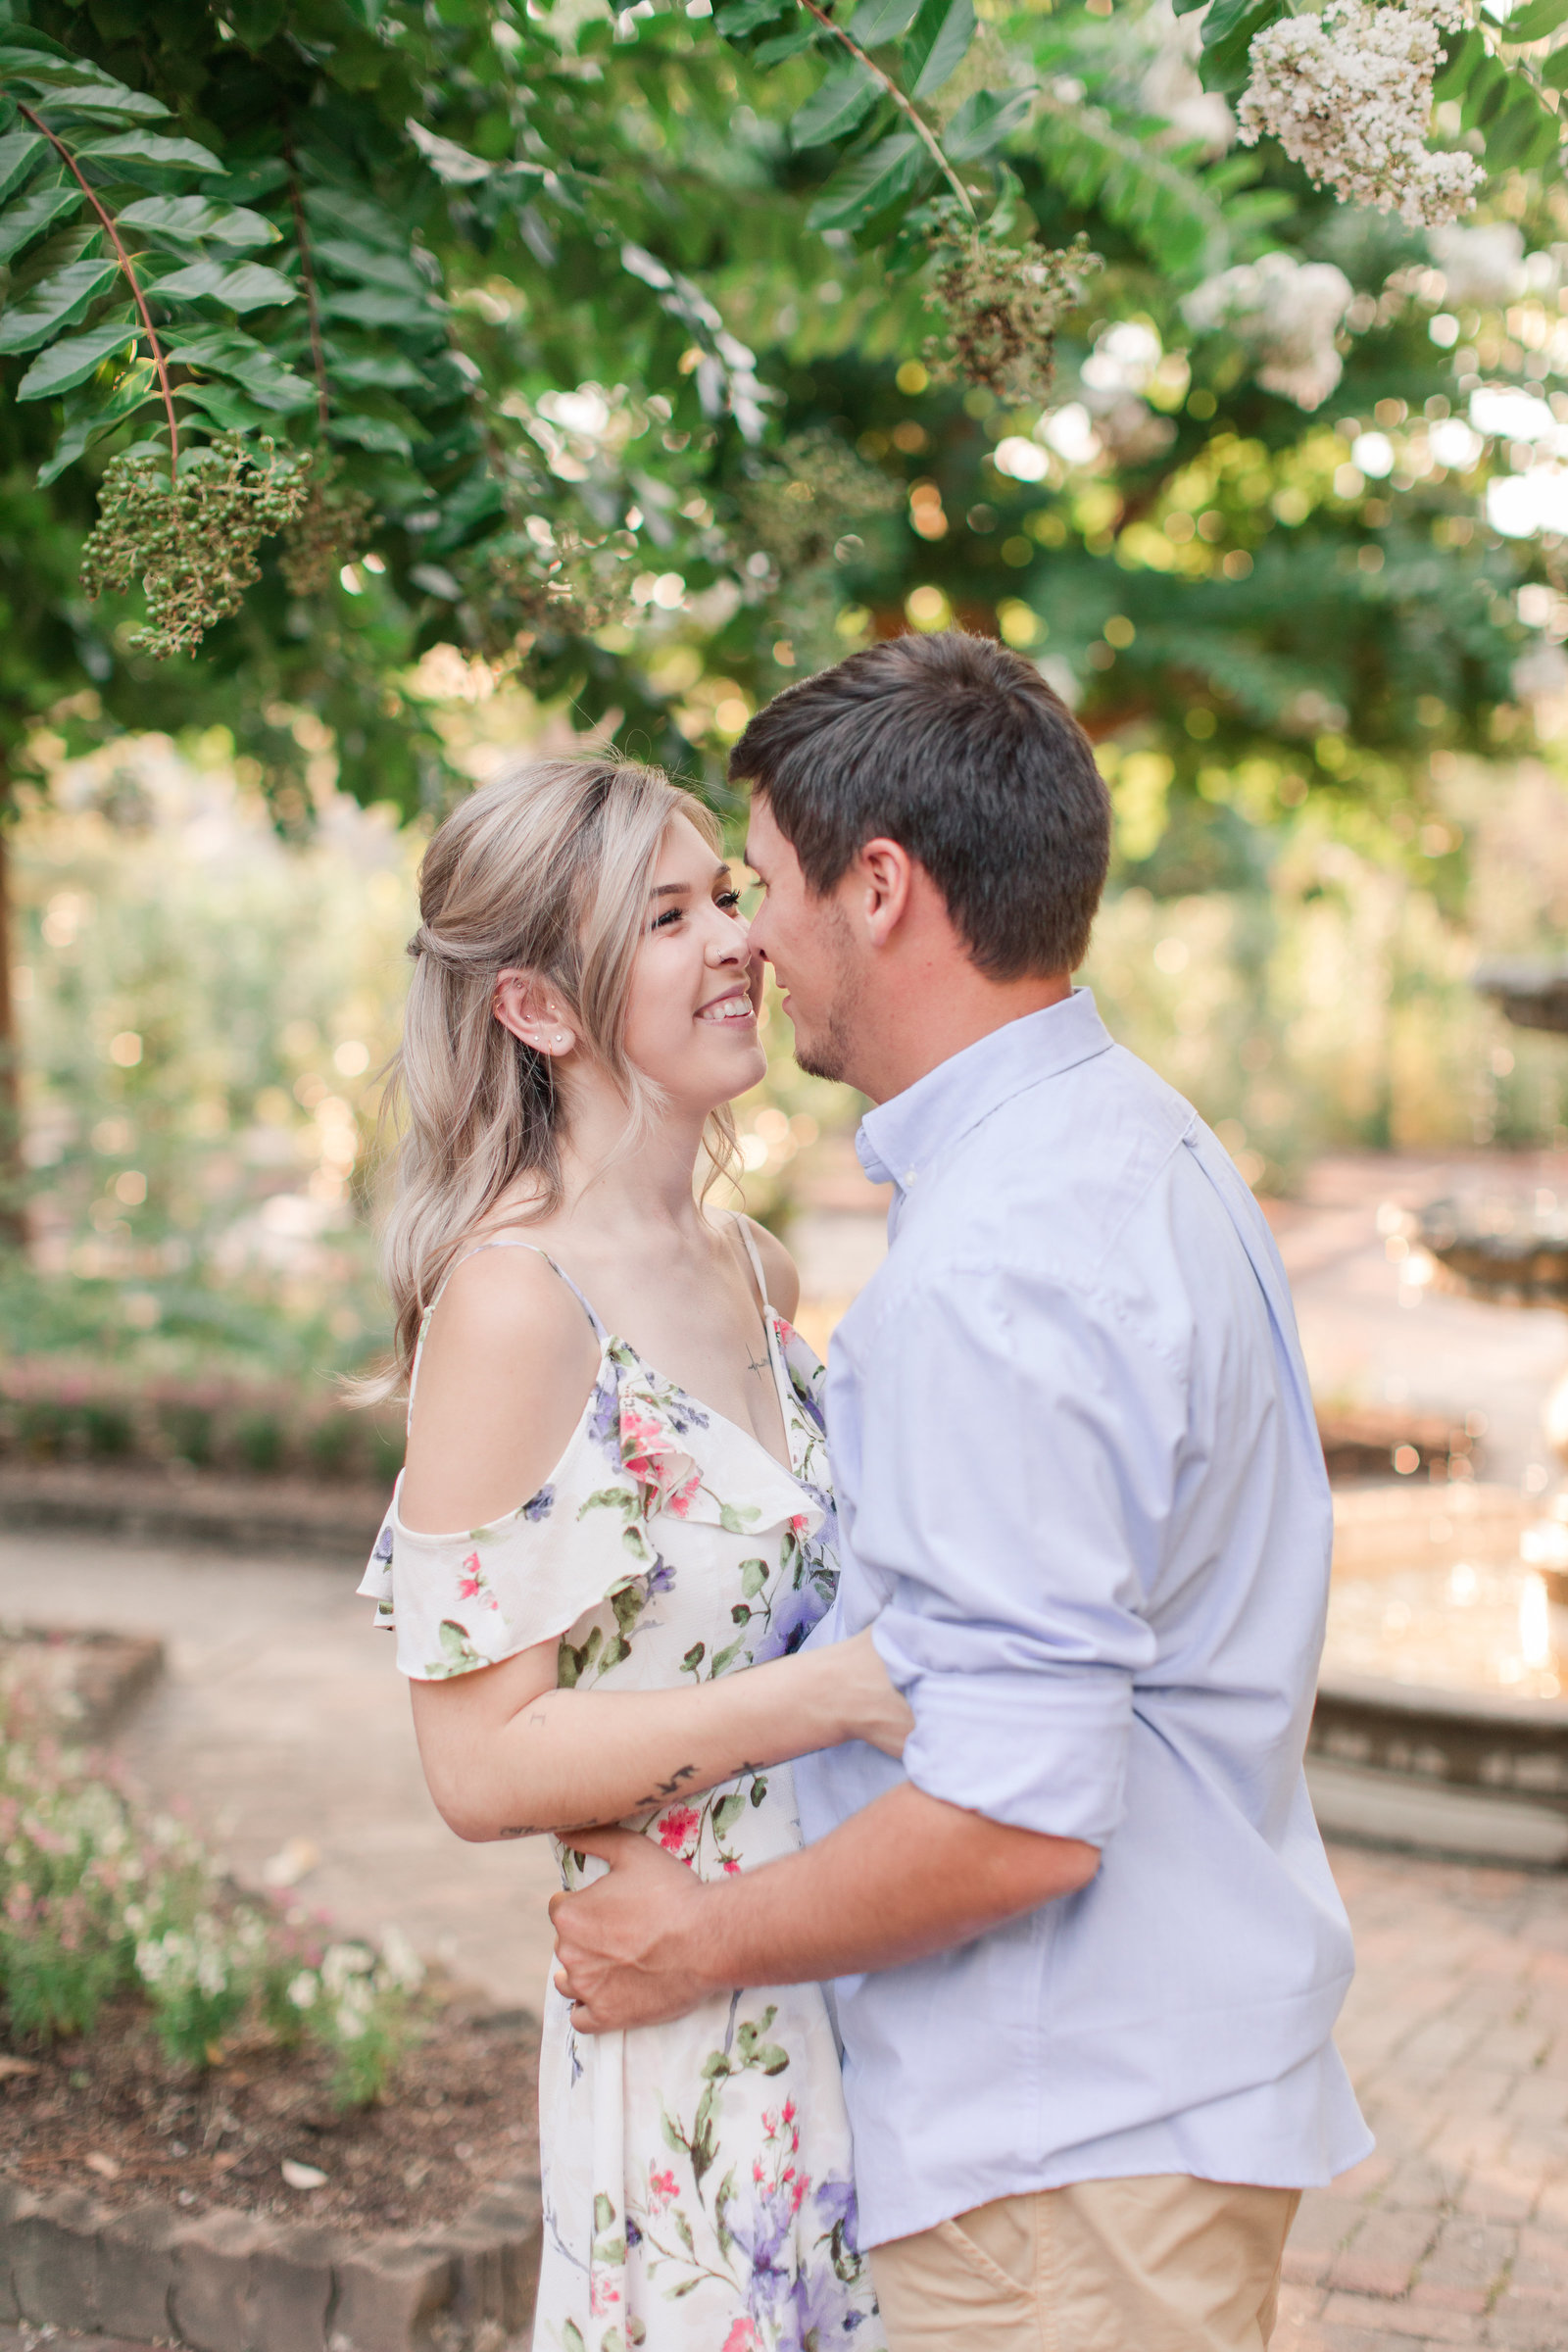 Jennifer B Photography-Sandhills Horticultural Gardens Engagement-Pinehurst NC-Cody and Kayla-2019-0081